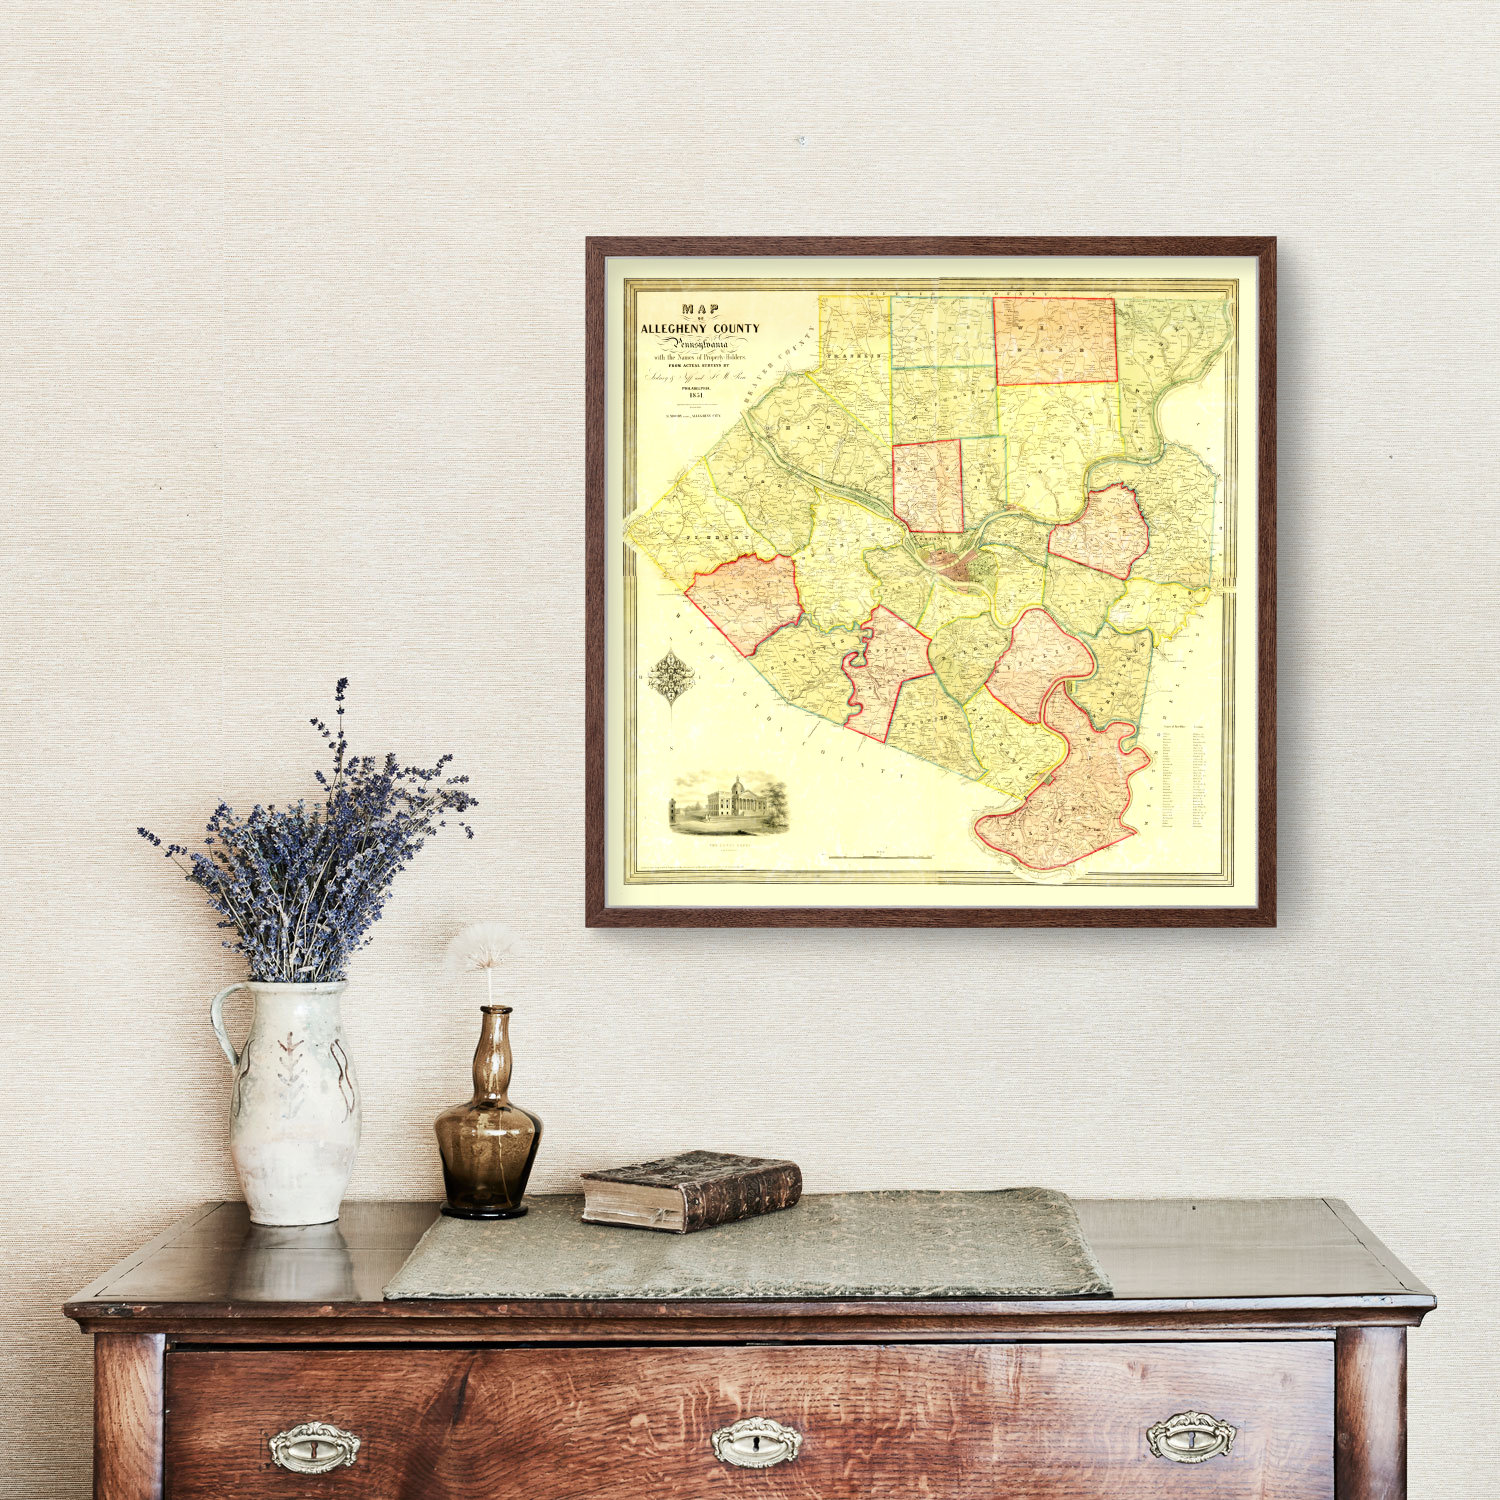 Vintage Map of Allegheny County, Pennsylvania 1851